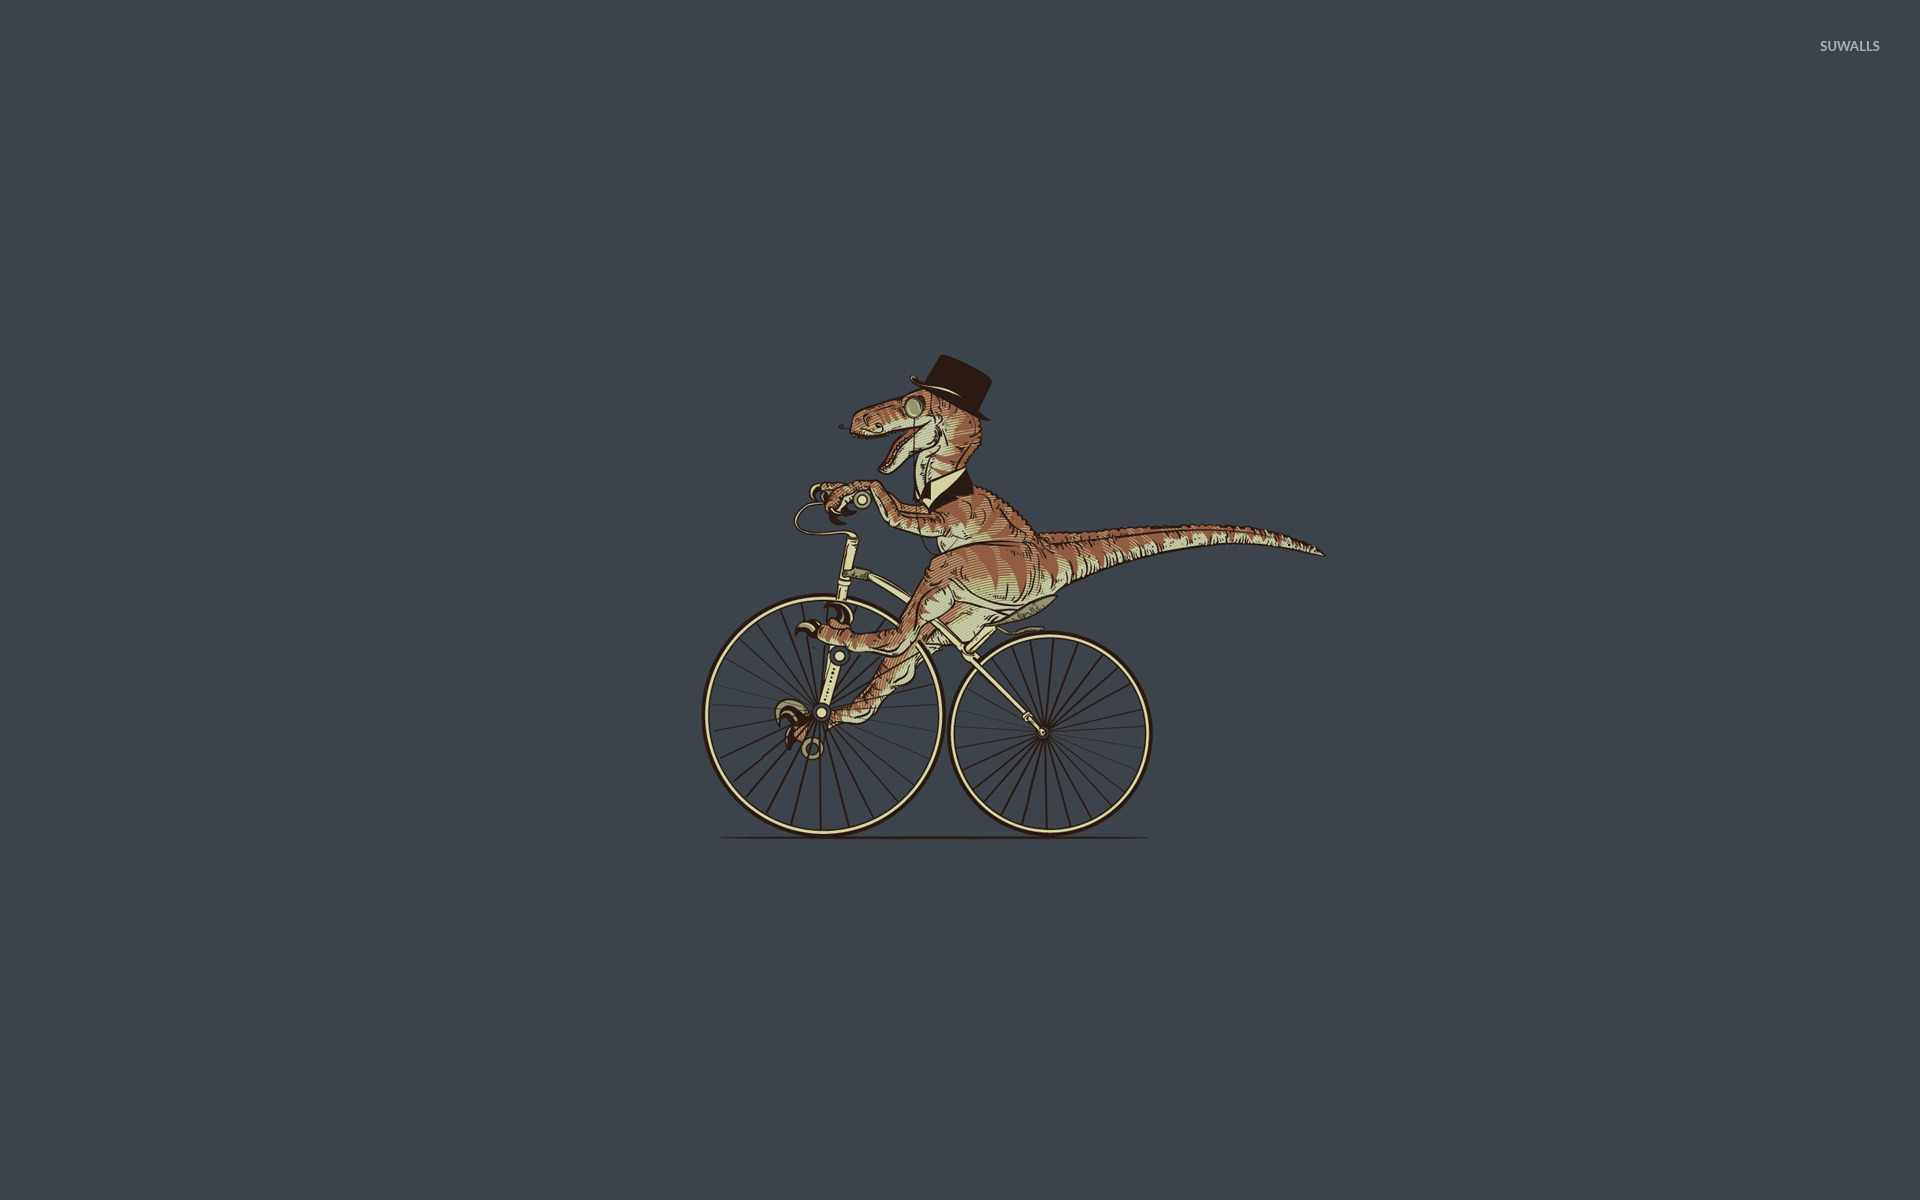 Funny Cat Bicycle